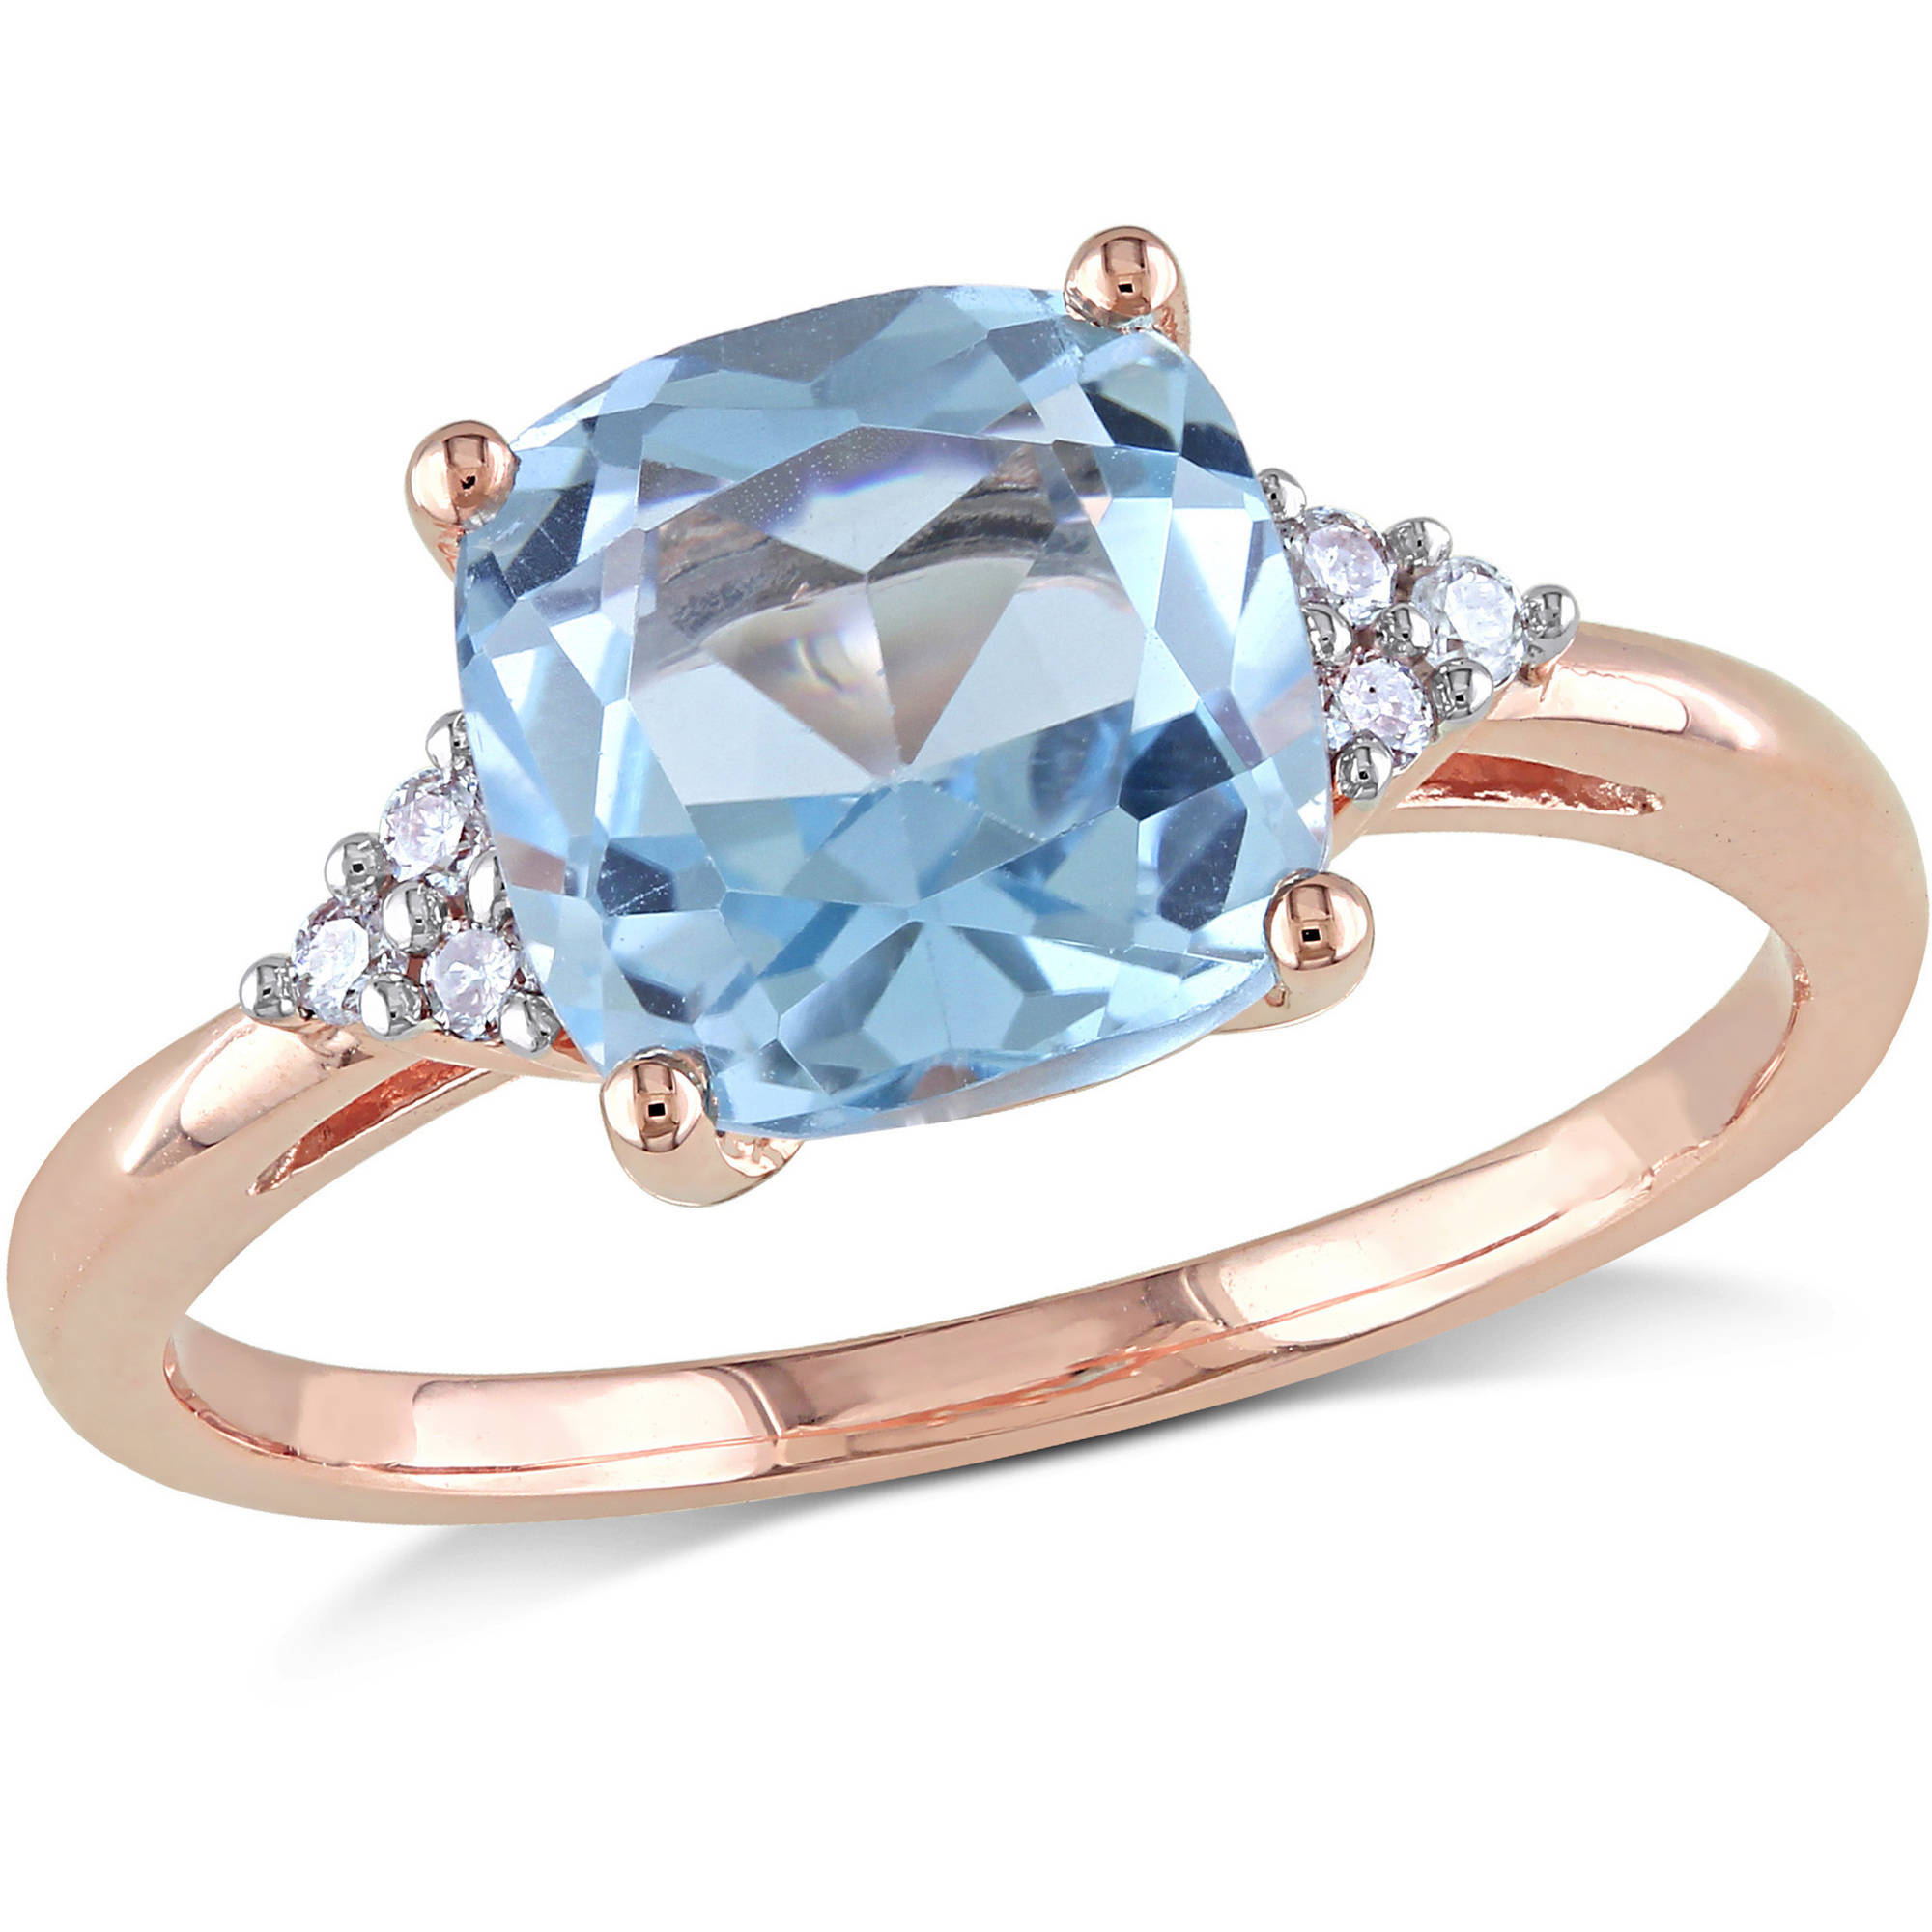 Tangelo 2-1 2 Carat T.G.W. Blue Topaz and Diamond-Accent 10kt Rose Gold Cocktail Ring by Tangelo